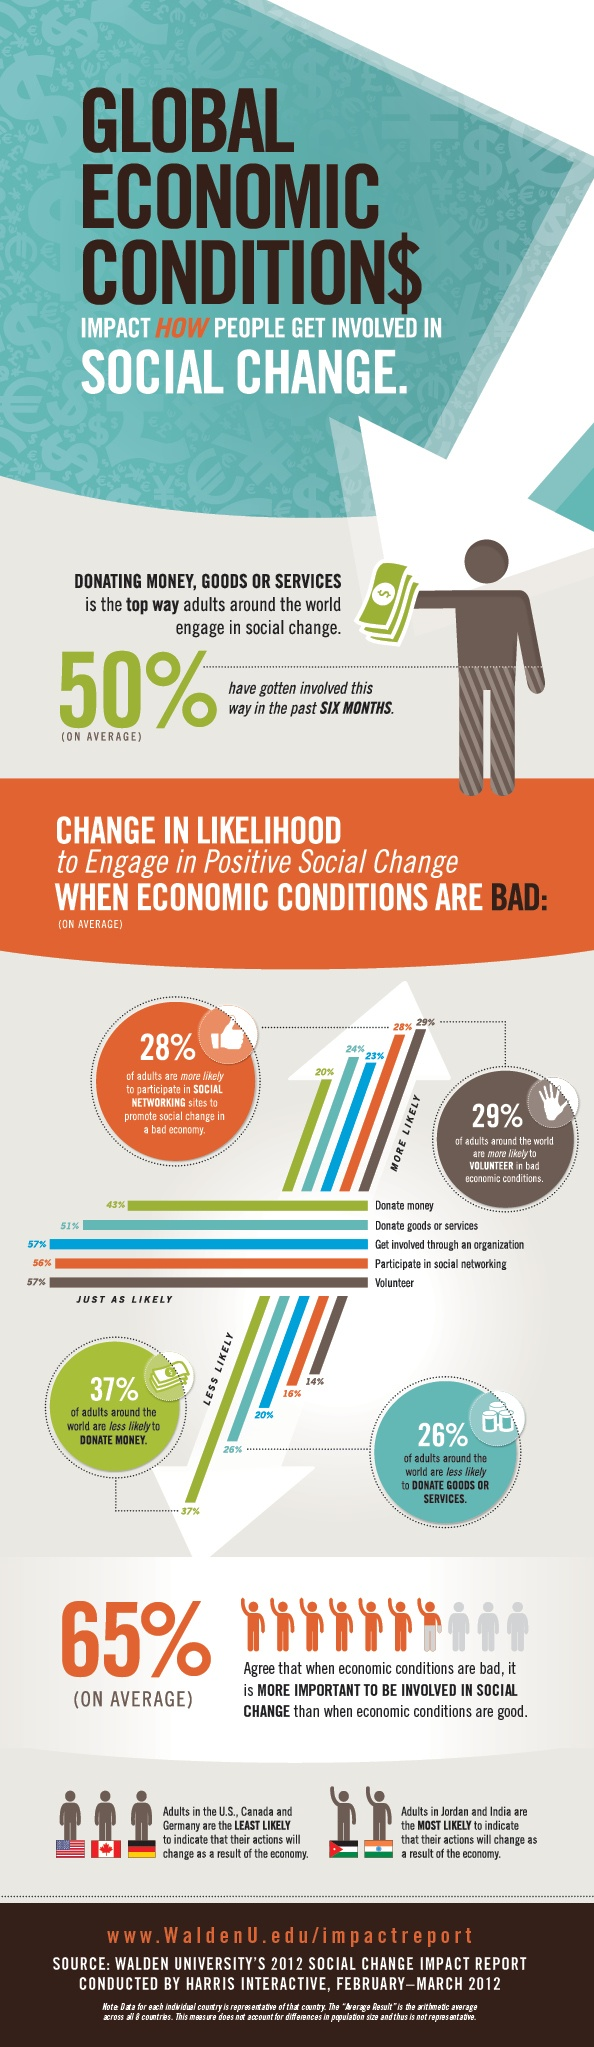 The 2012 Social Change Impact Report is